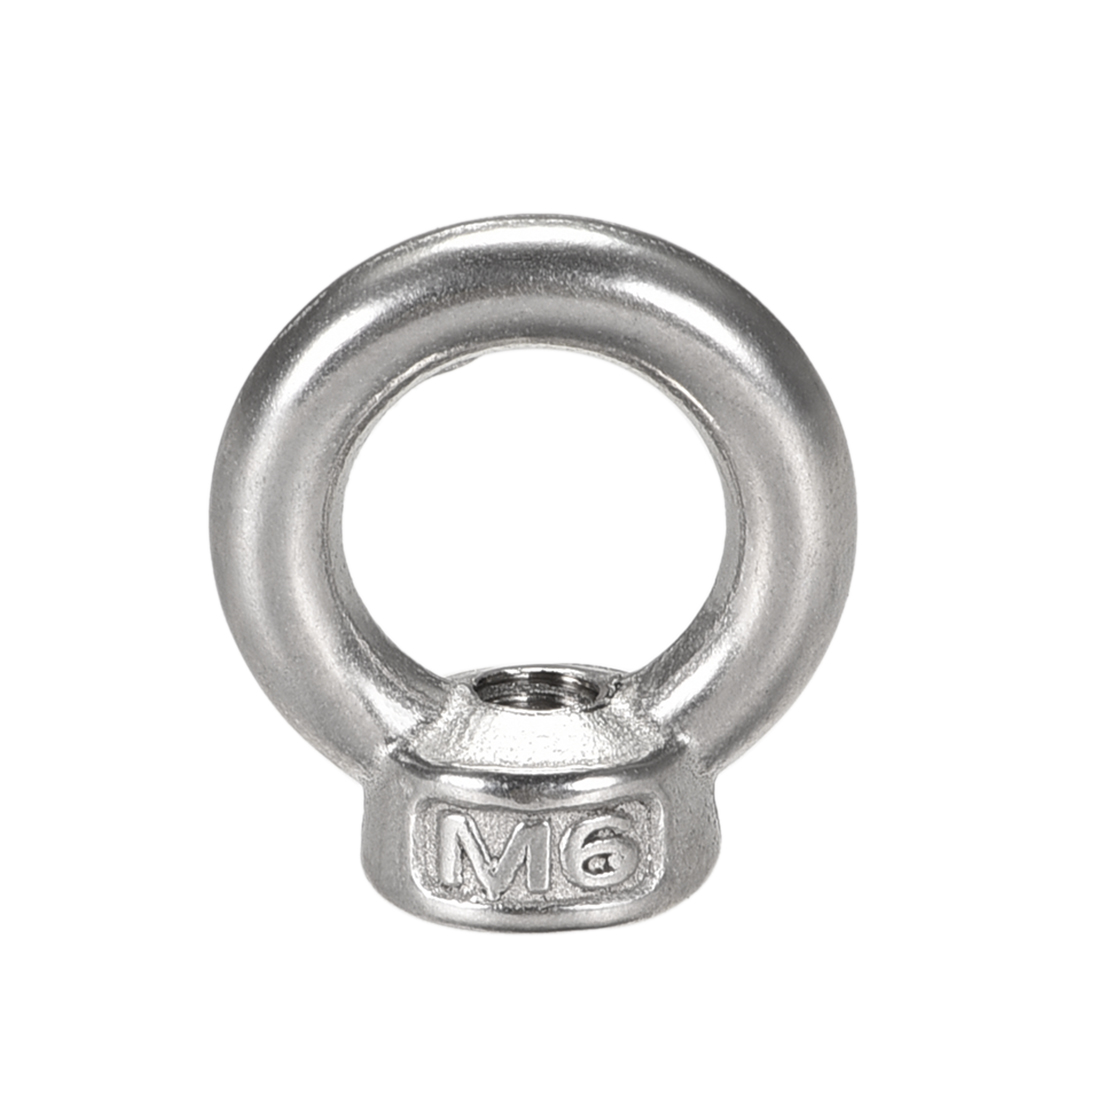 M6 Female Thread Stainless Steel Lifting Eye Nuts Ring 20 Pcs